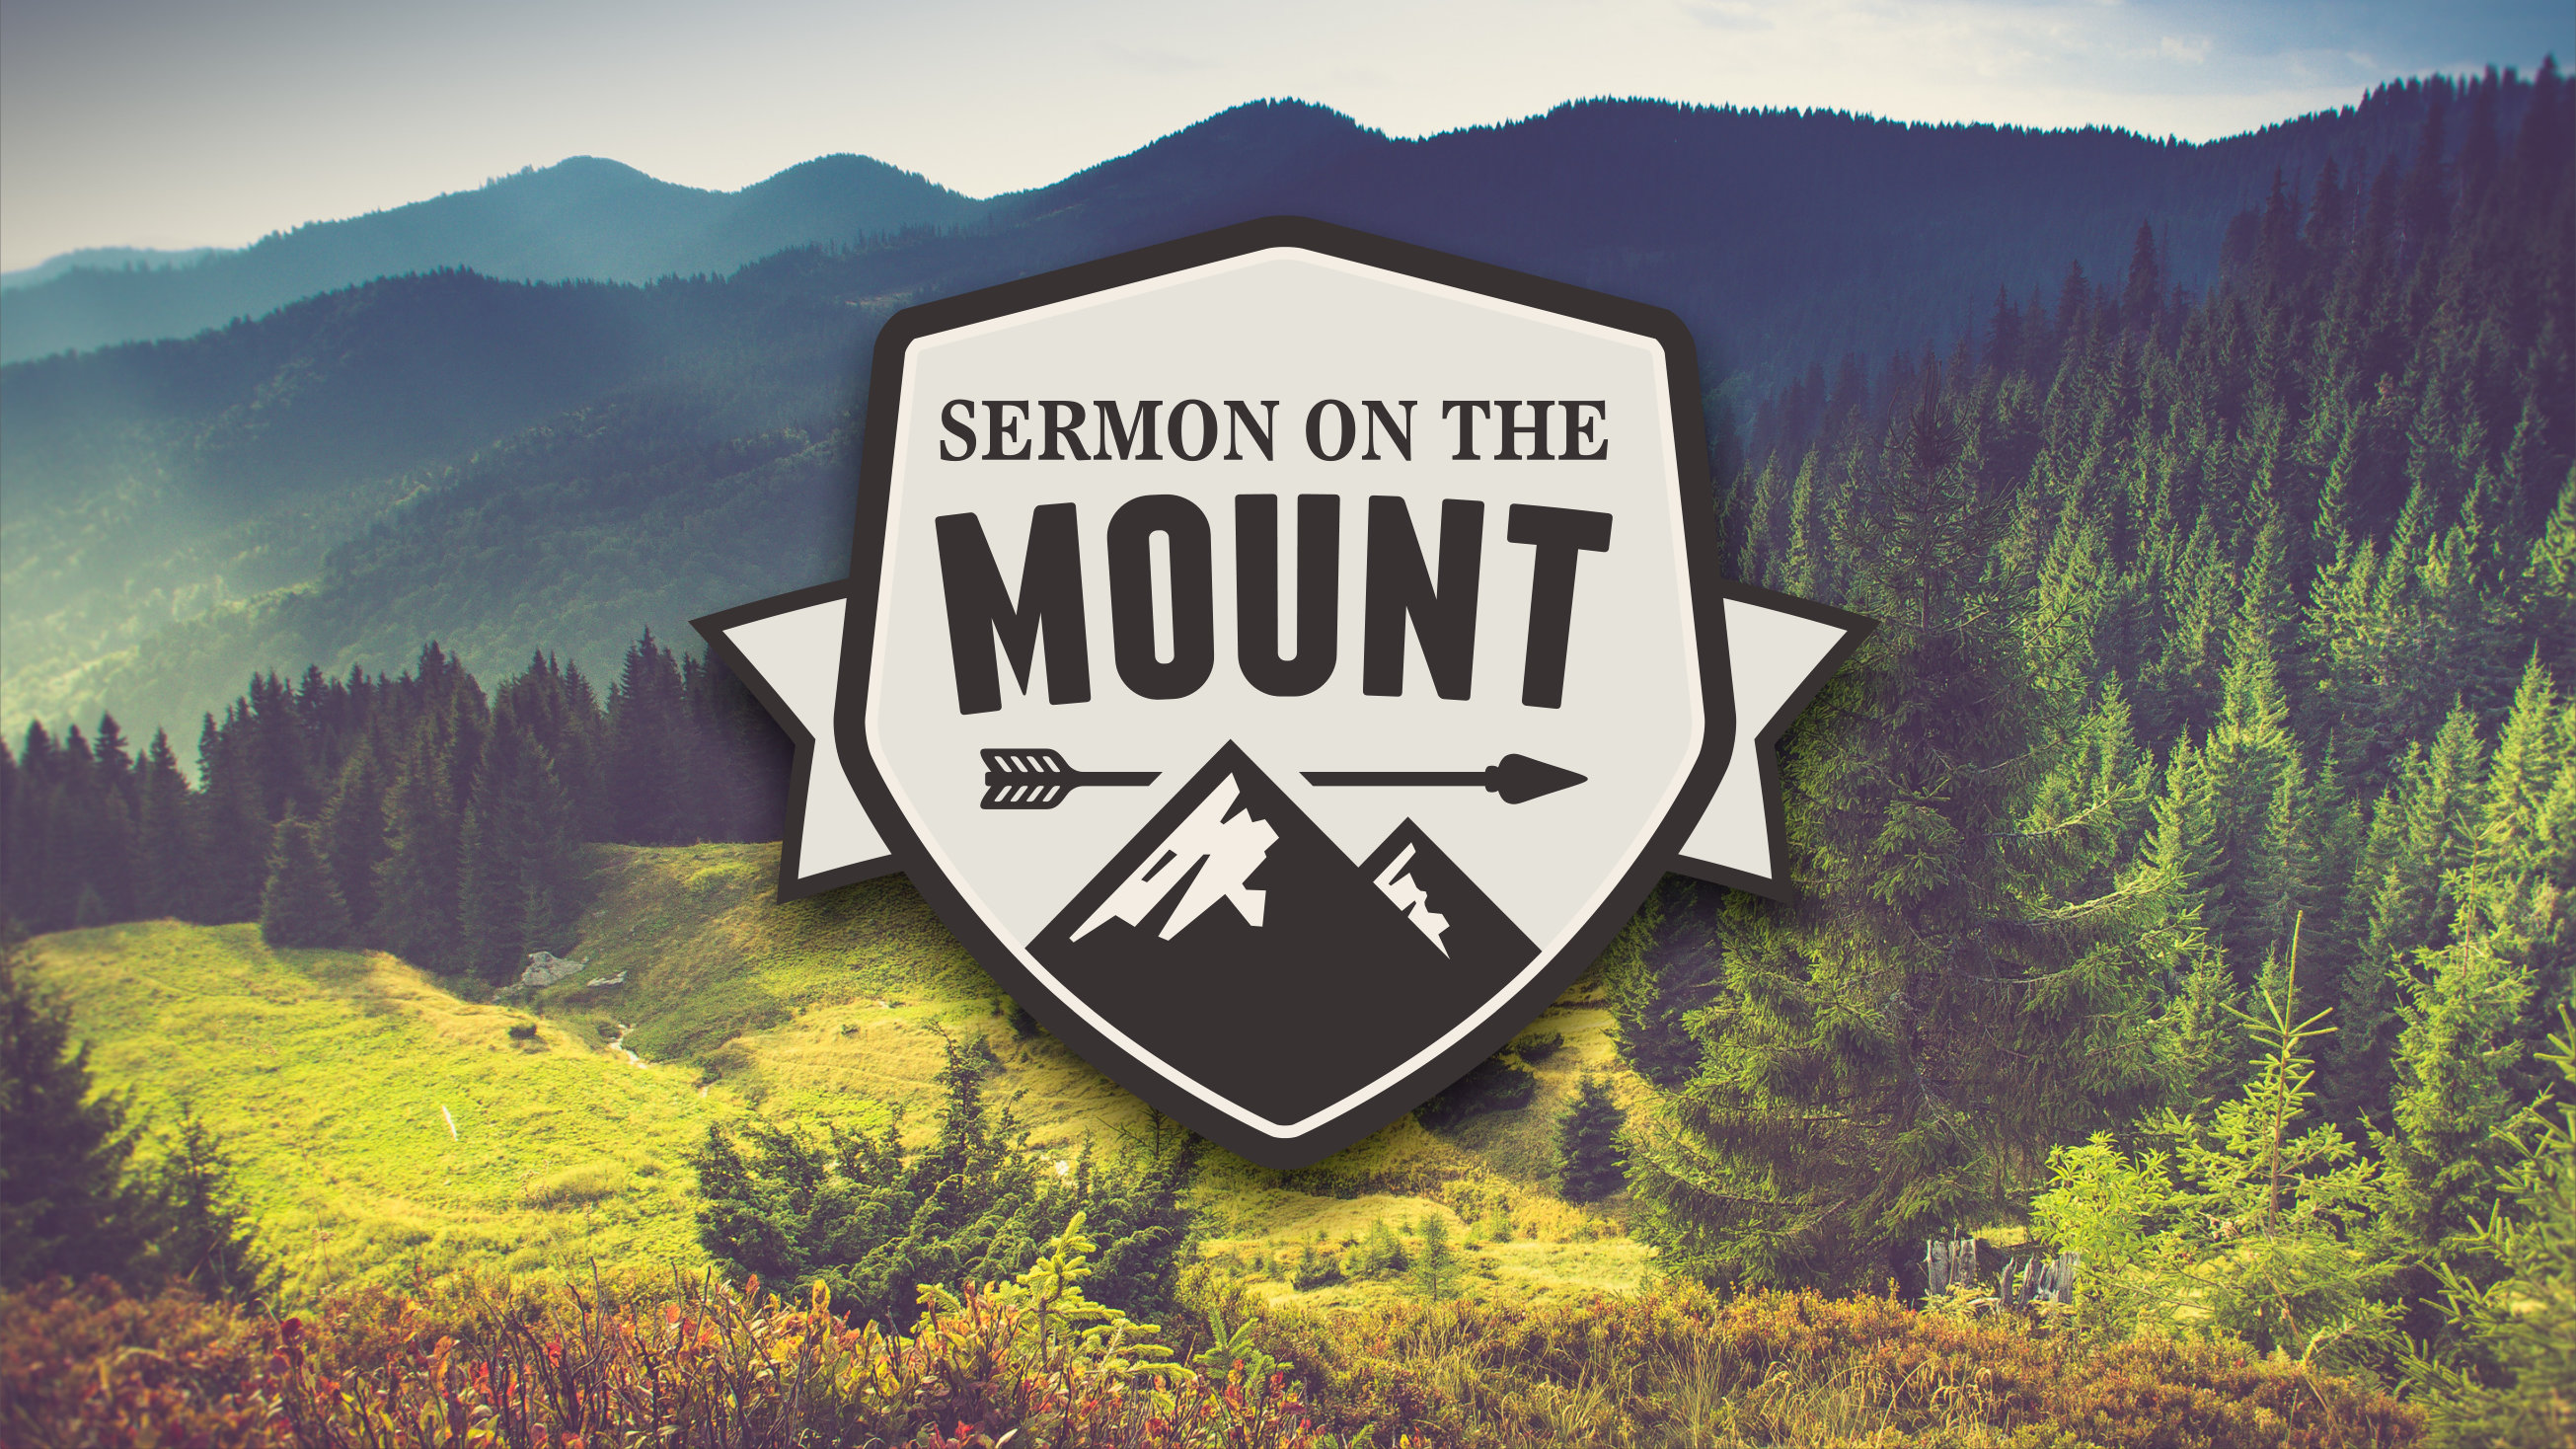 sermon of the mount and the What is the sermon on the mount was the sermon on the mount a complete sermon that jesus gave, or just a summary of what jesus taught on the mount.